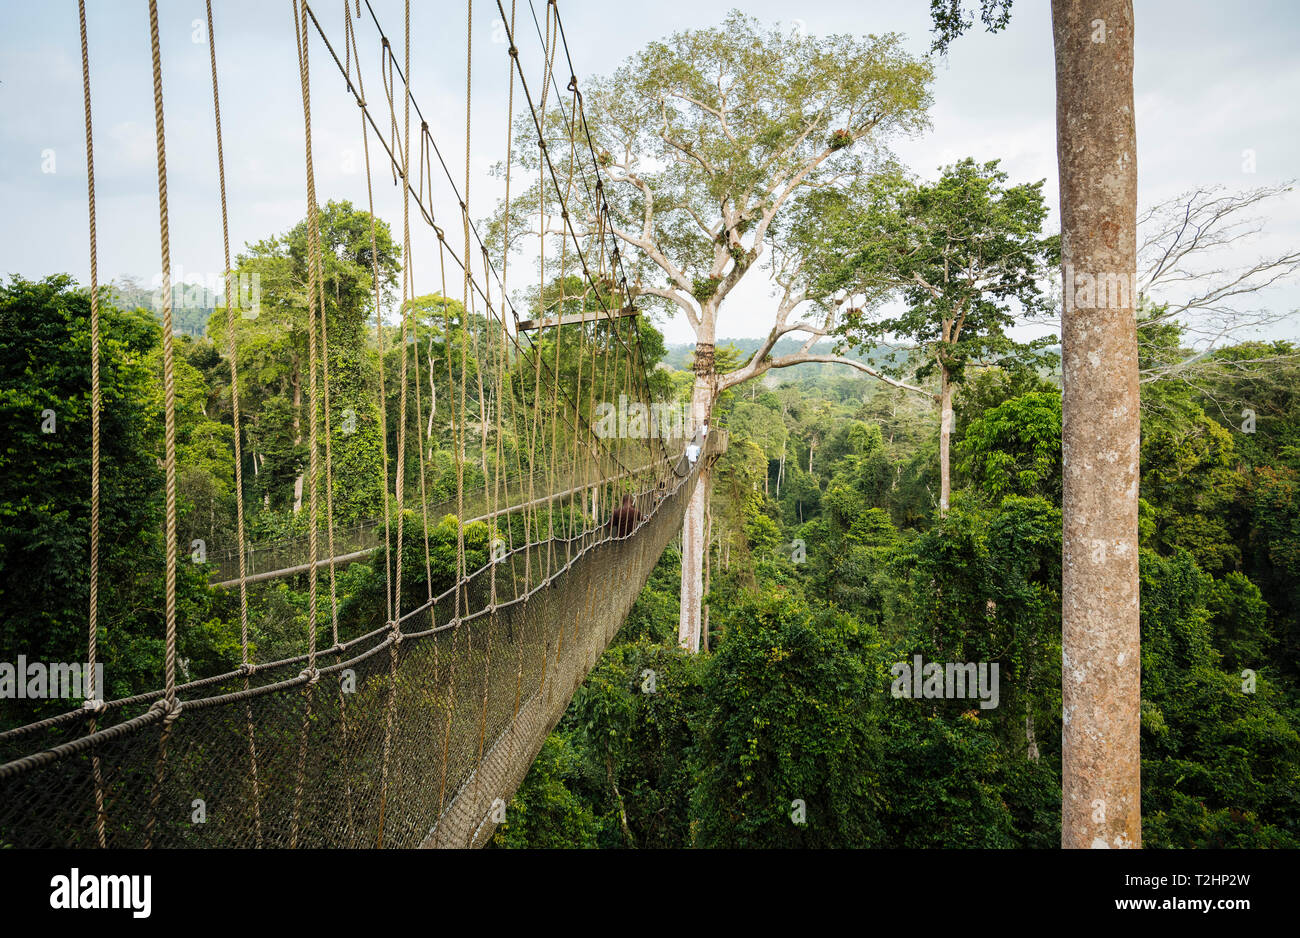 Tourists on Canopy Walkway through tropical rainforest in Kakum National Park, Ghana, Africa - Stock Image